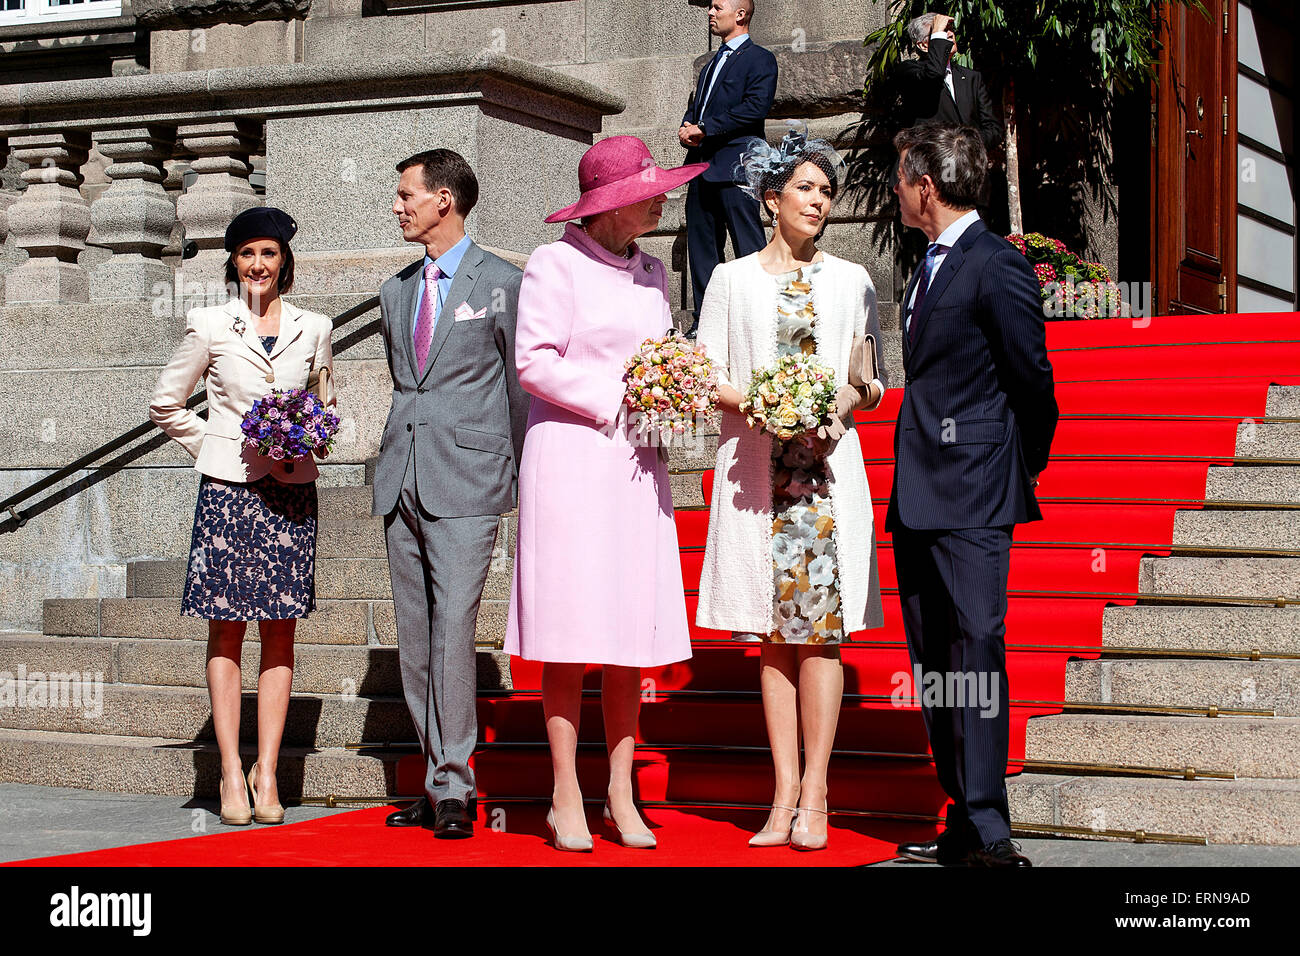 Copenhagen, Denmark, May 5th, 2015: The Royal Family waits for the Queen to arrive before they enter the Parliament - Stock Image